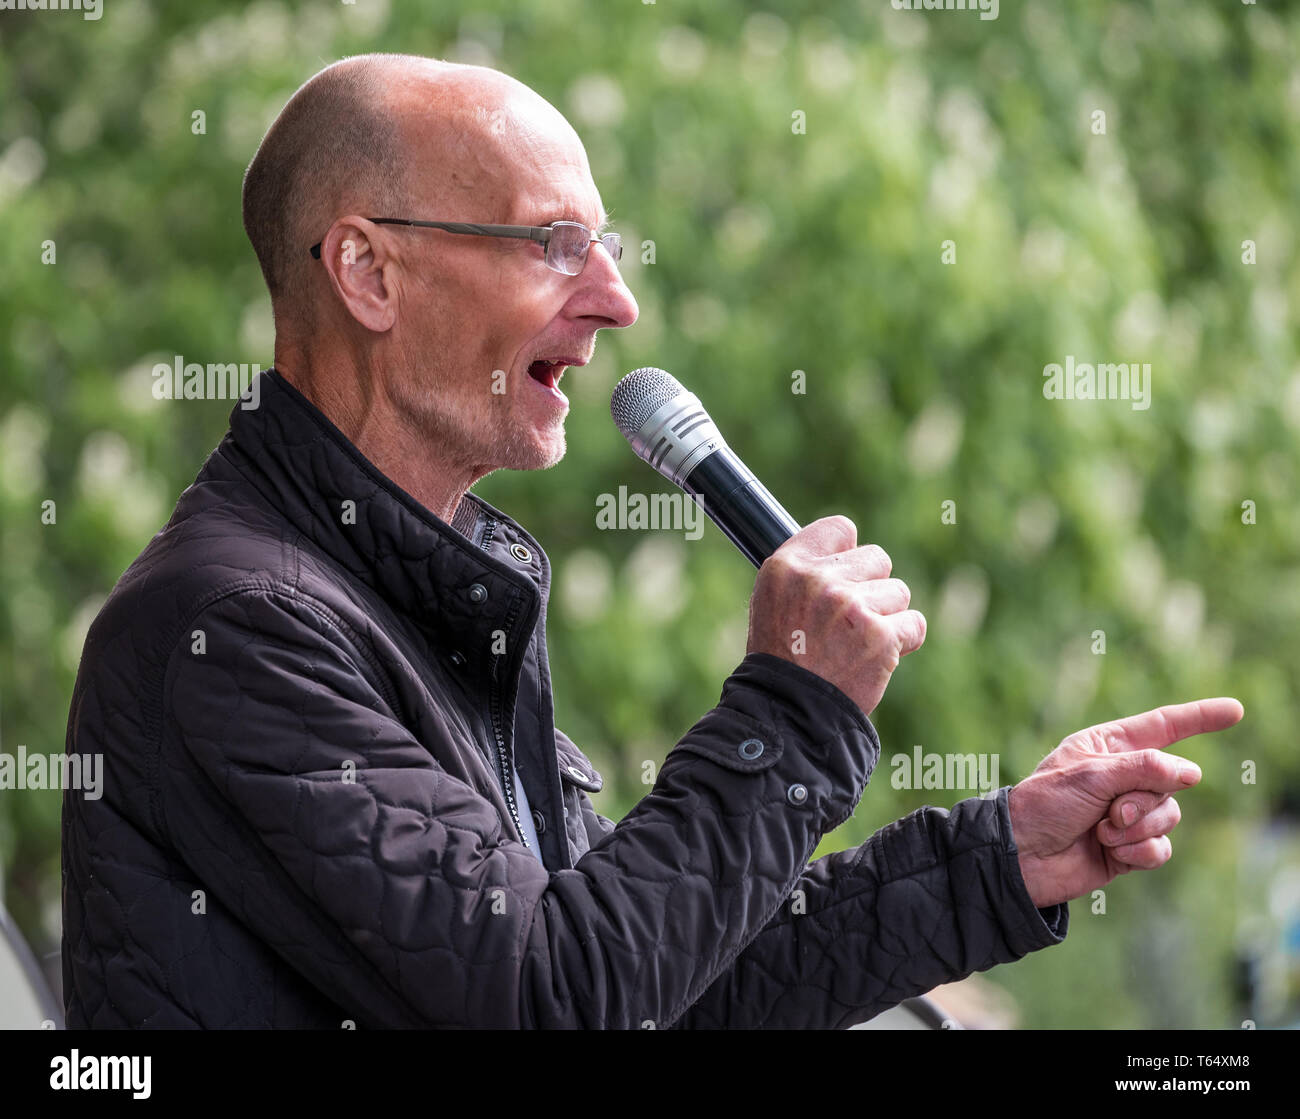 Oxford World Day for Animals in Laboratories. Animal rights activist Mel Broughton speaking at the rally outside the Oxford University biomedical lab. - Stock Image